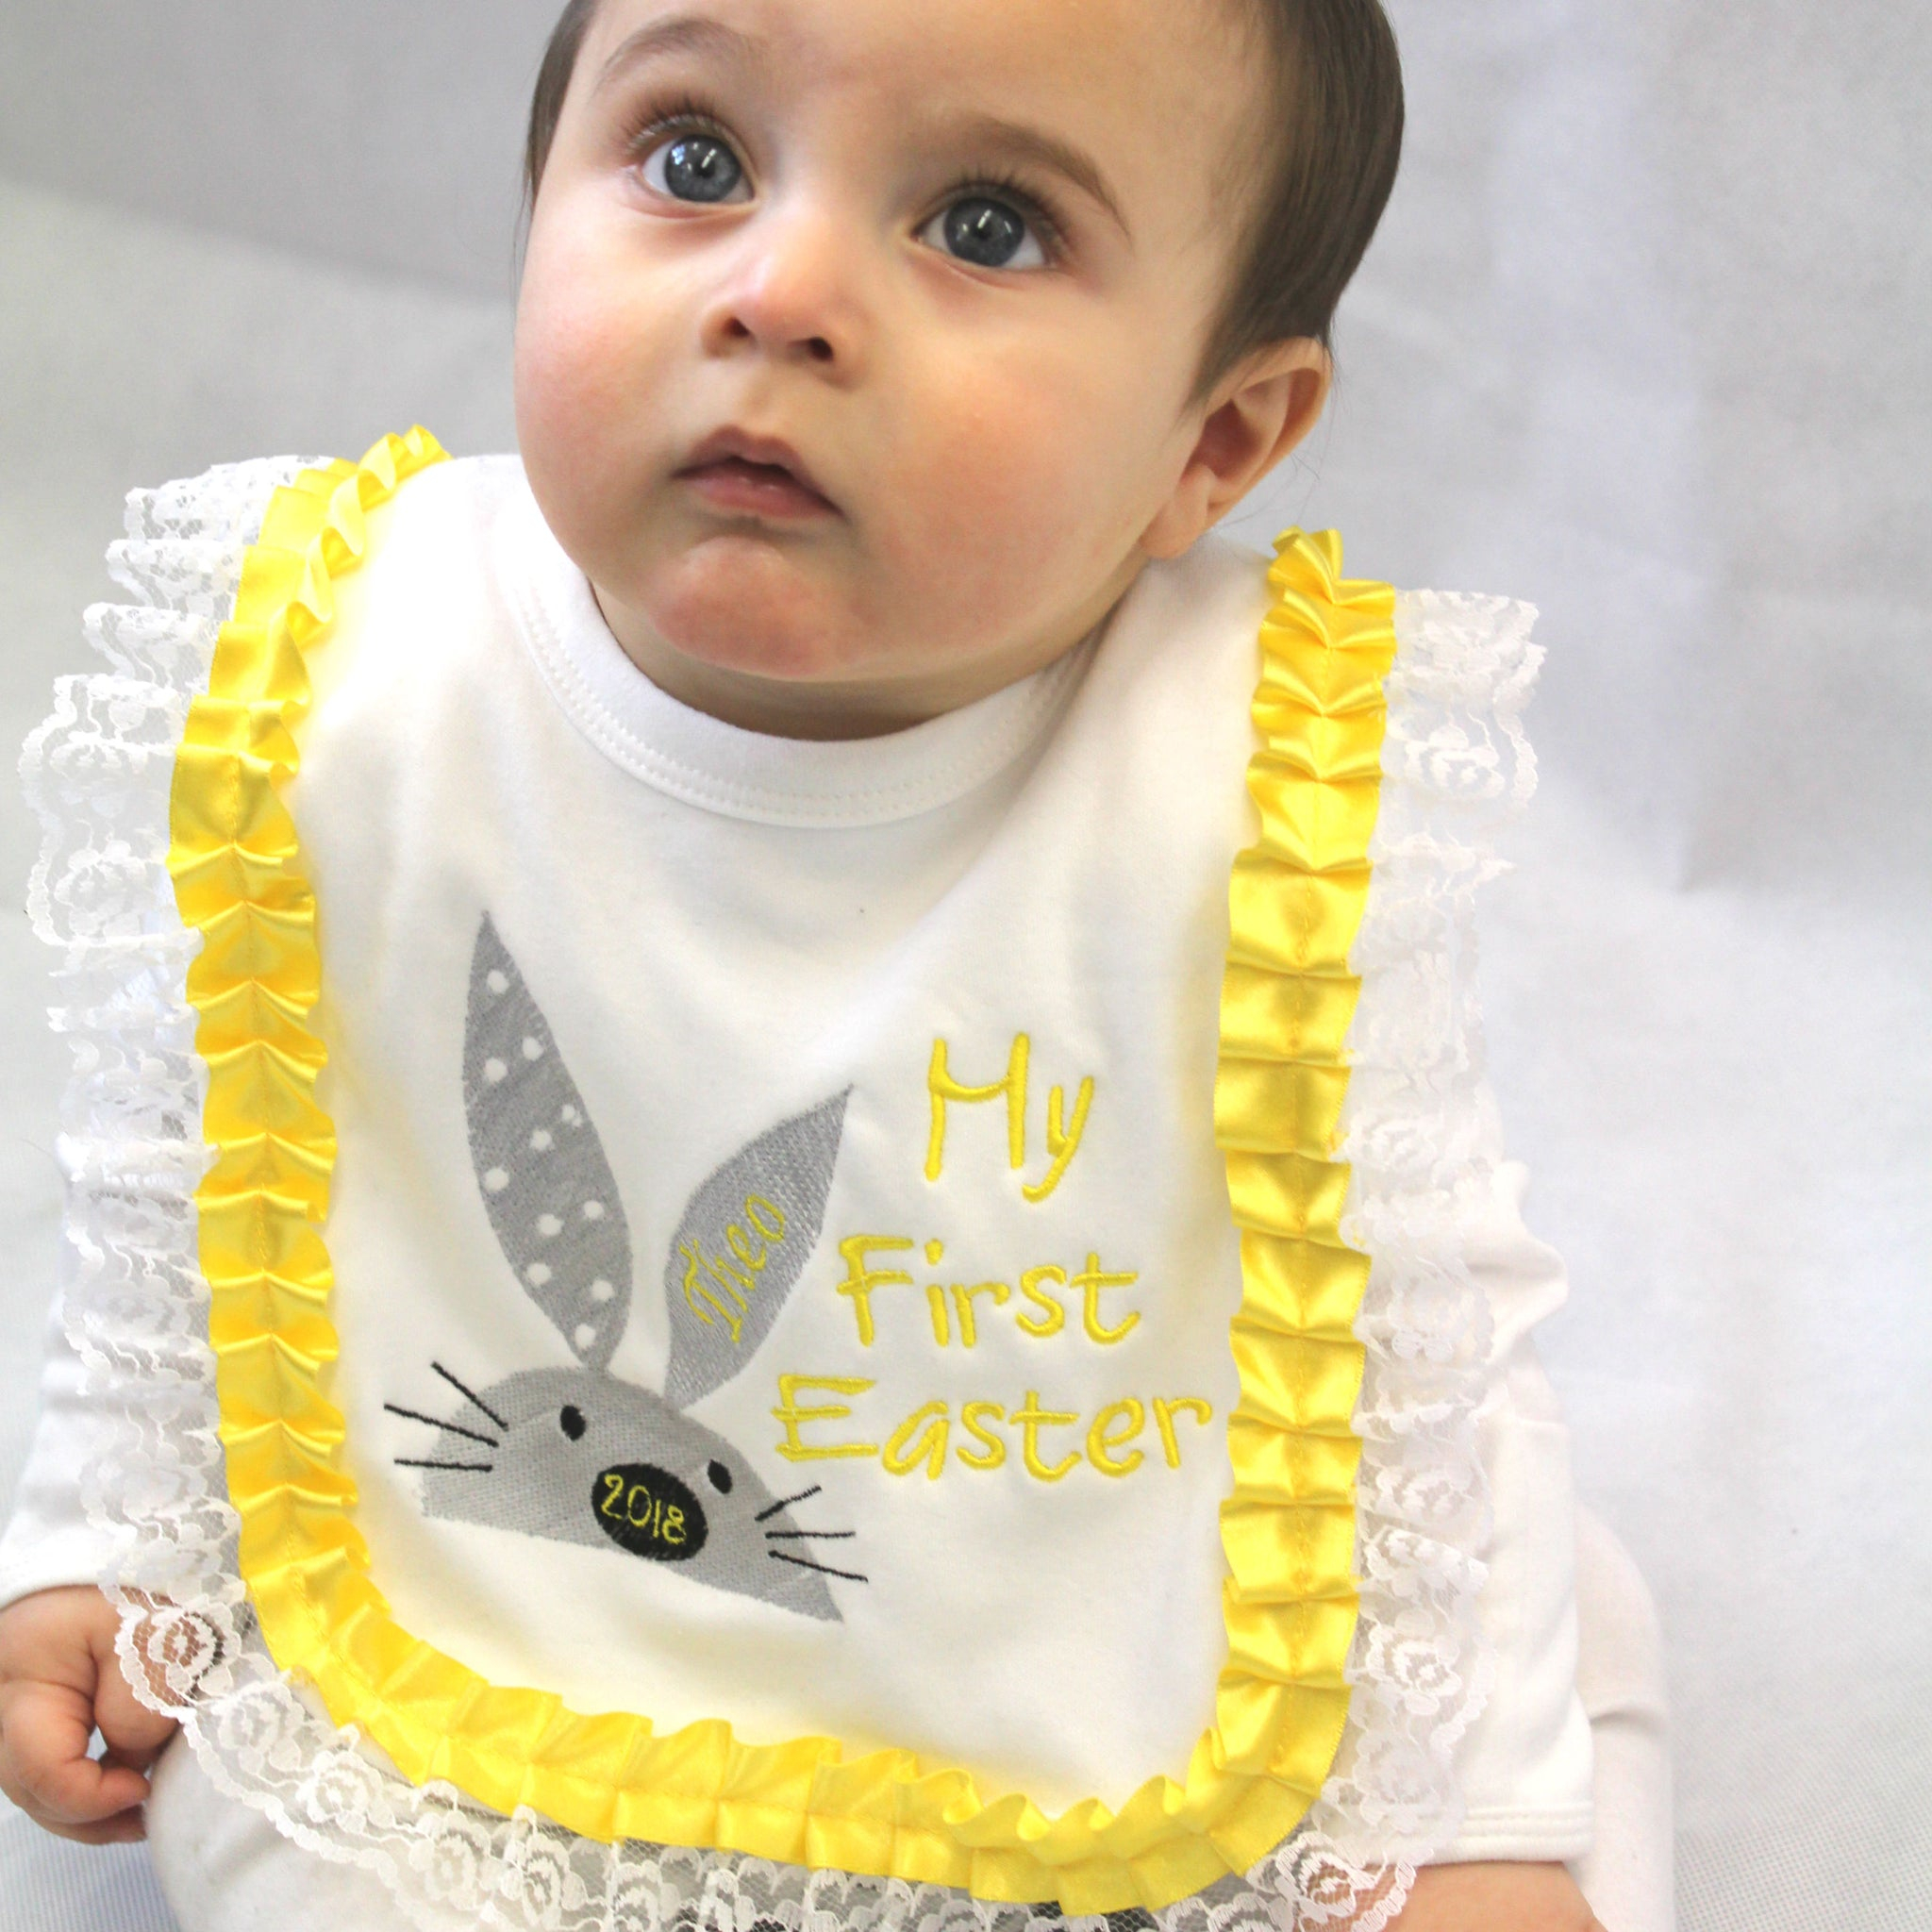 My First Easter Baby Bib